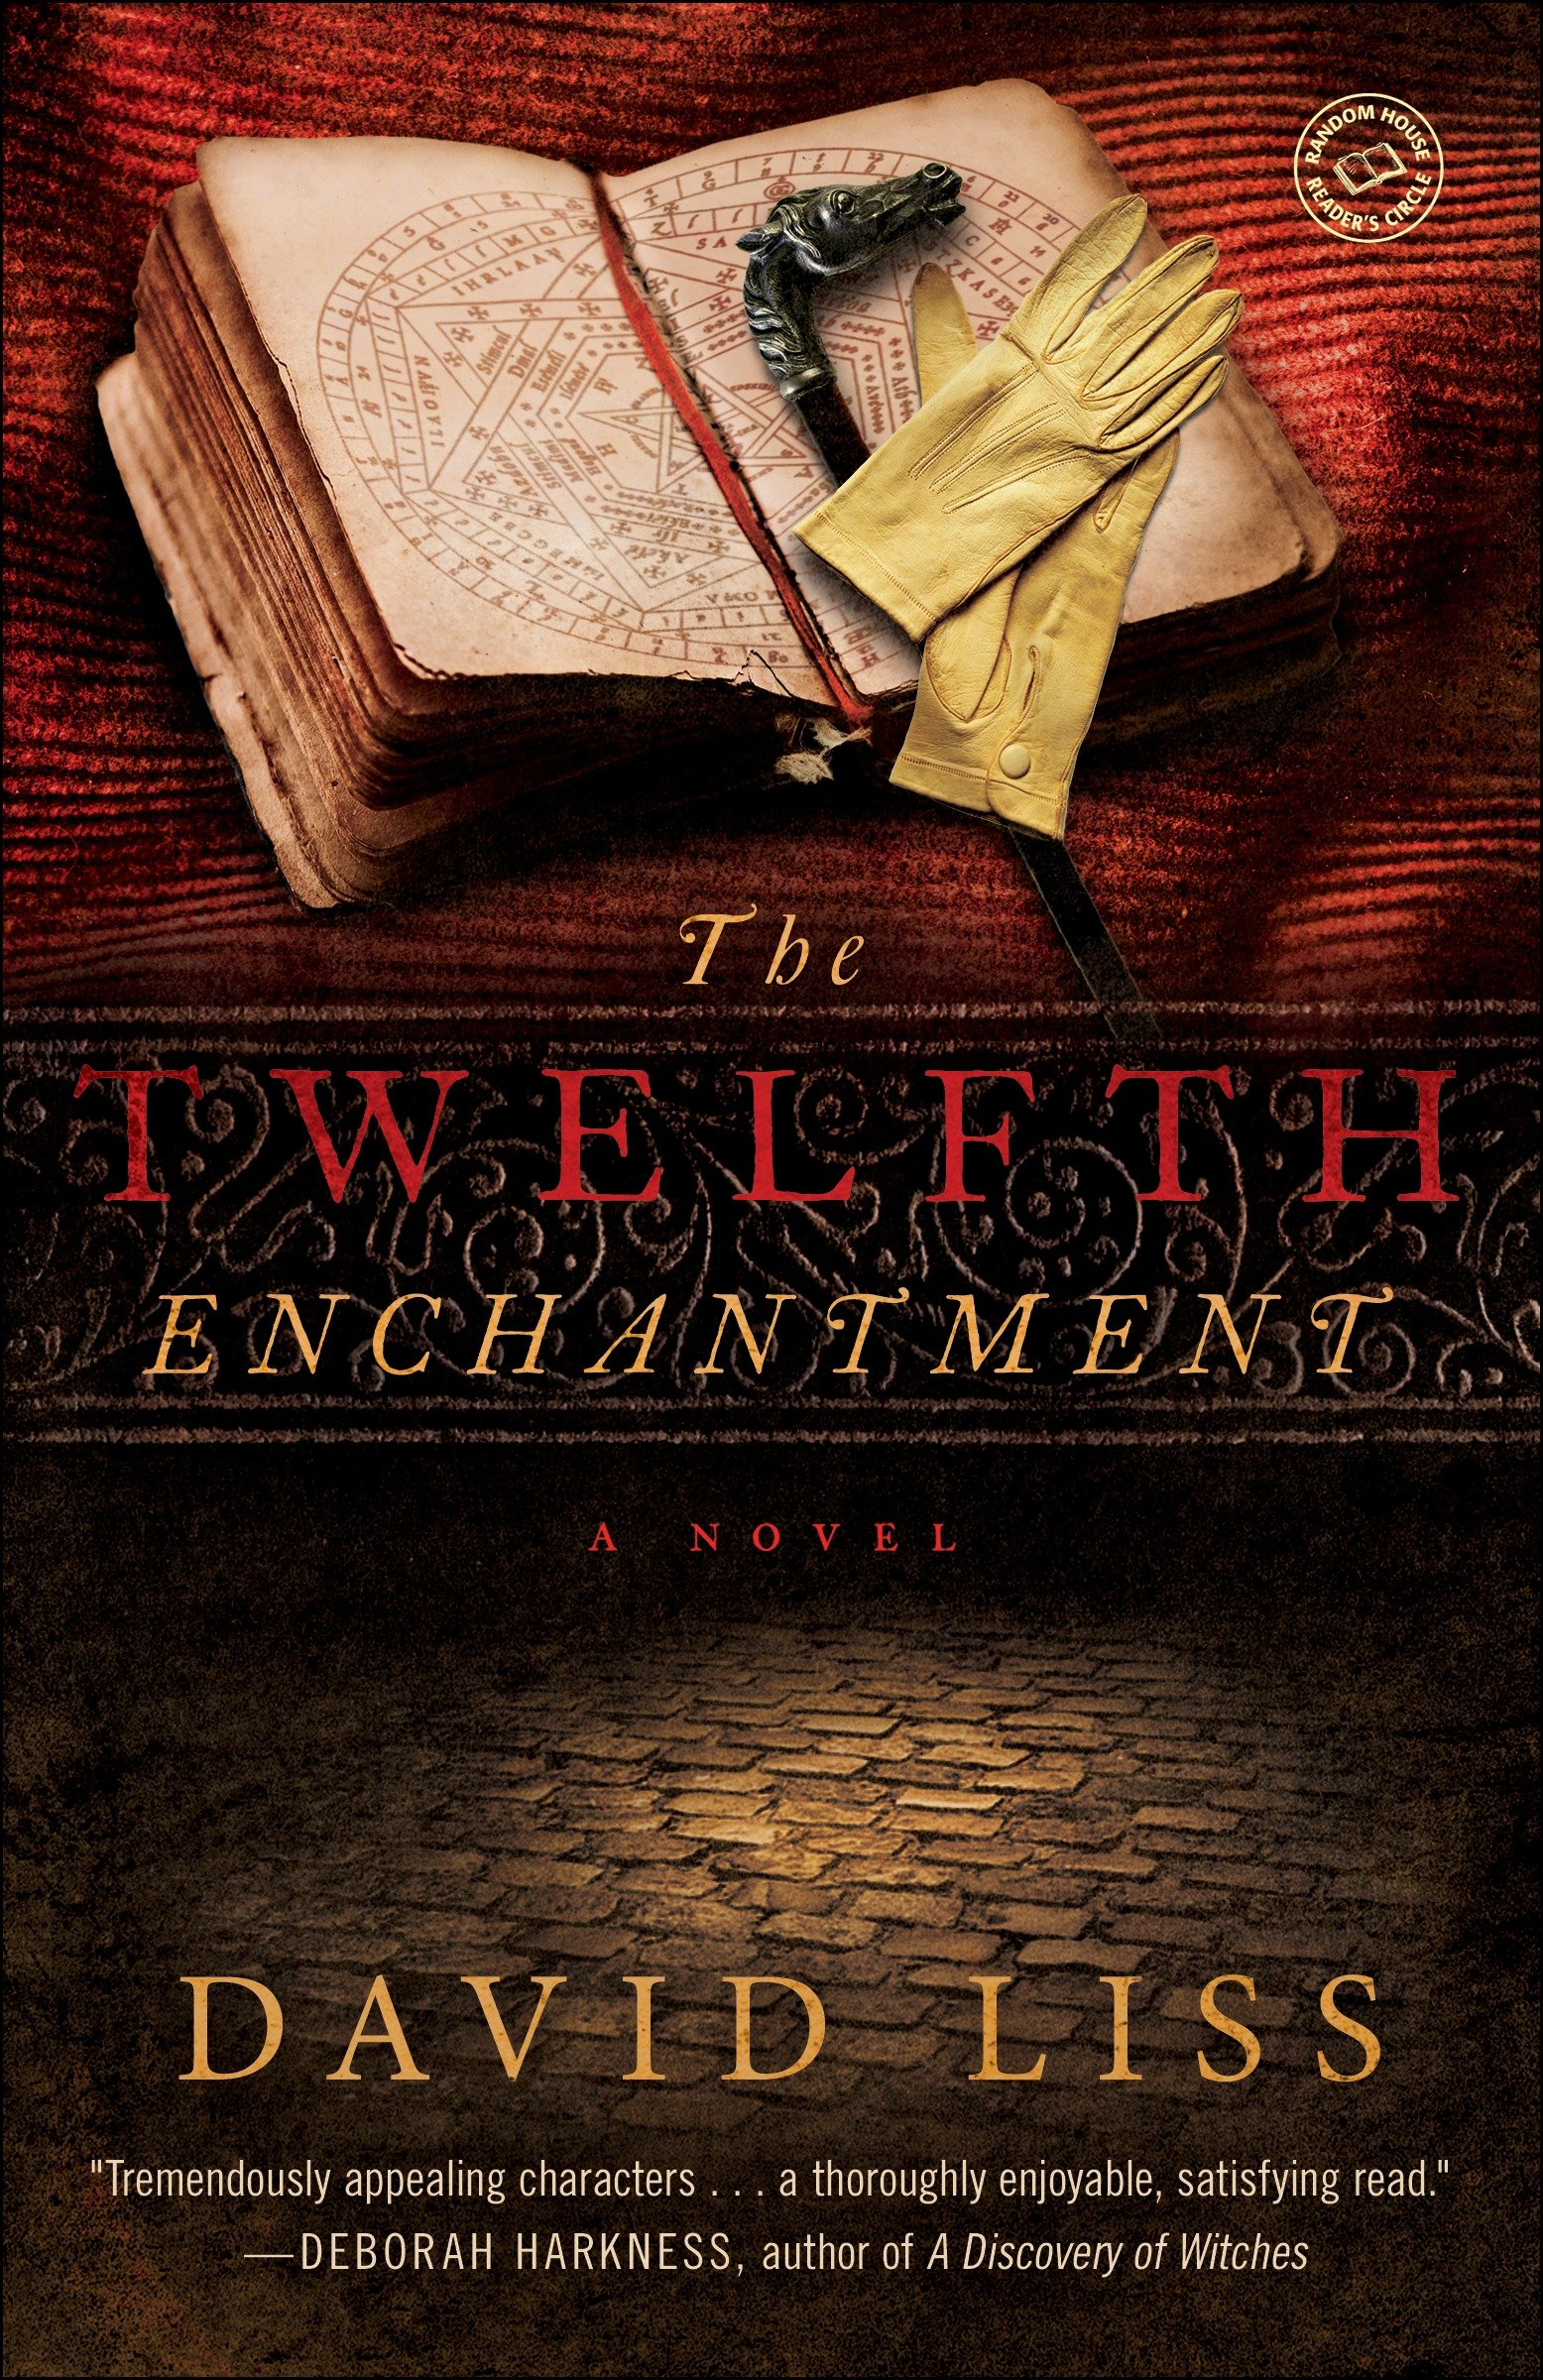 The twelfth enchantment cover image